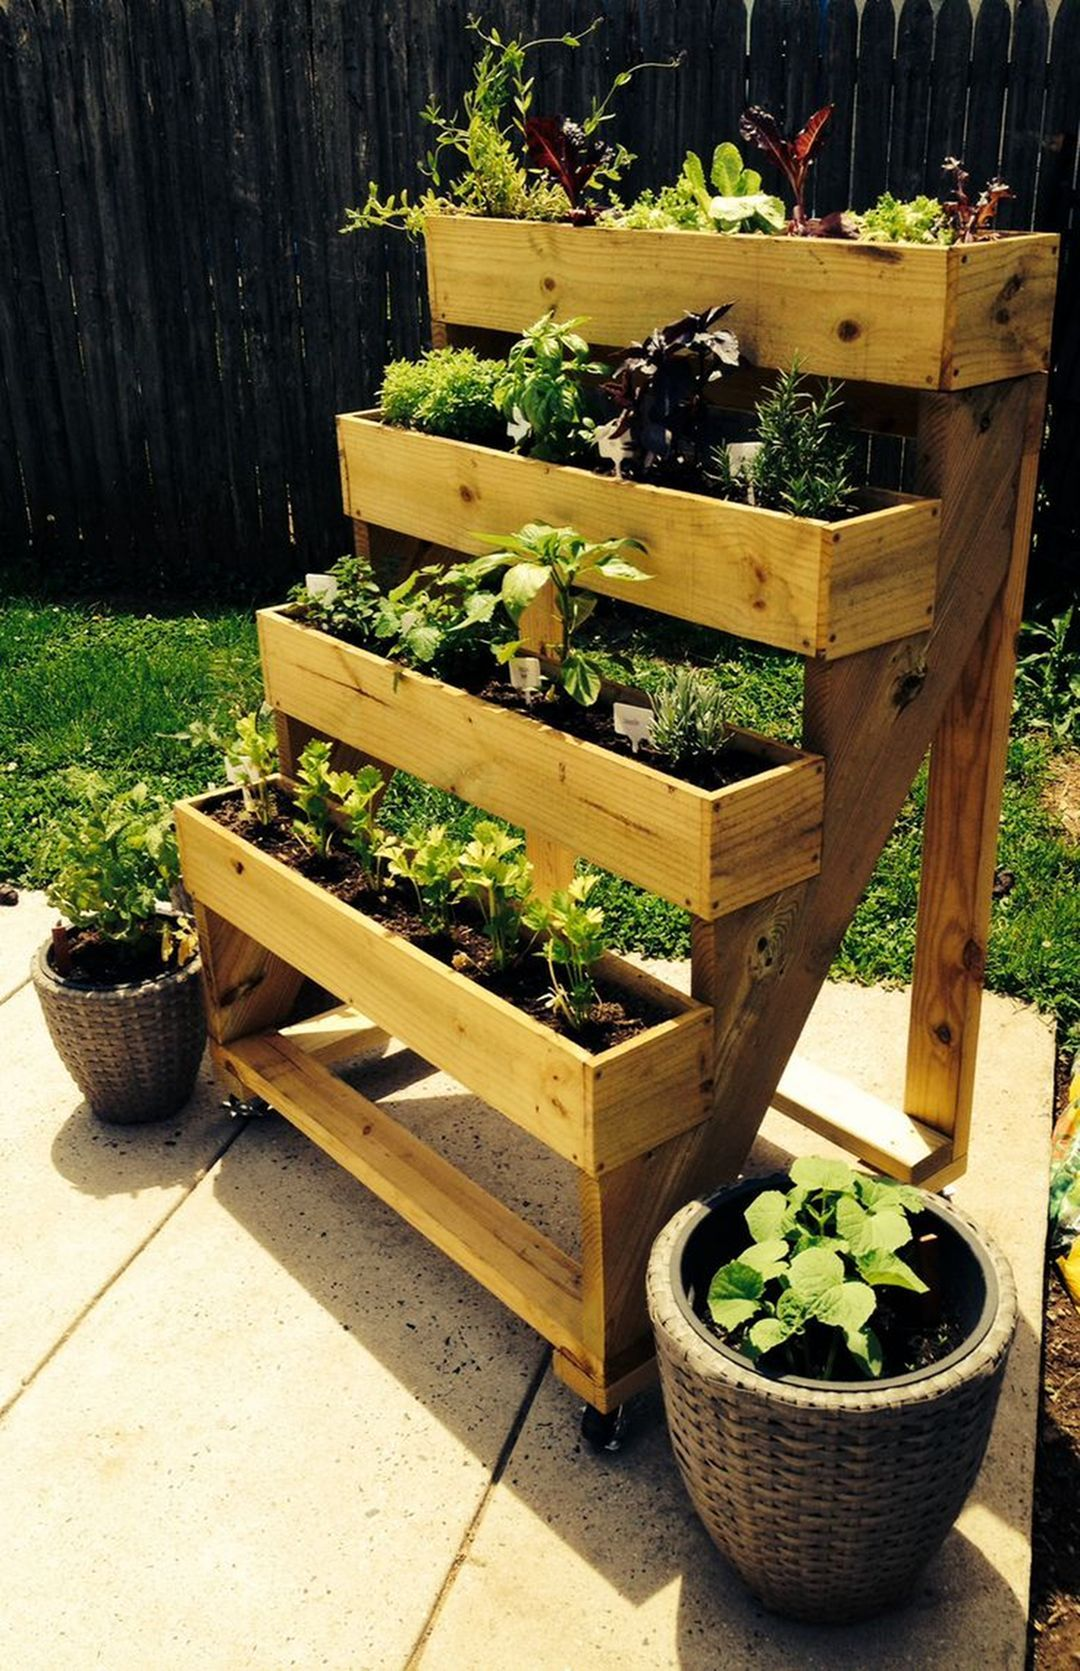 30+ Wonderful DIY Garden Planter Ideas To Enhance Your ...